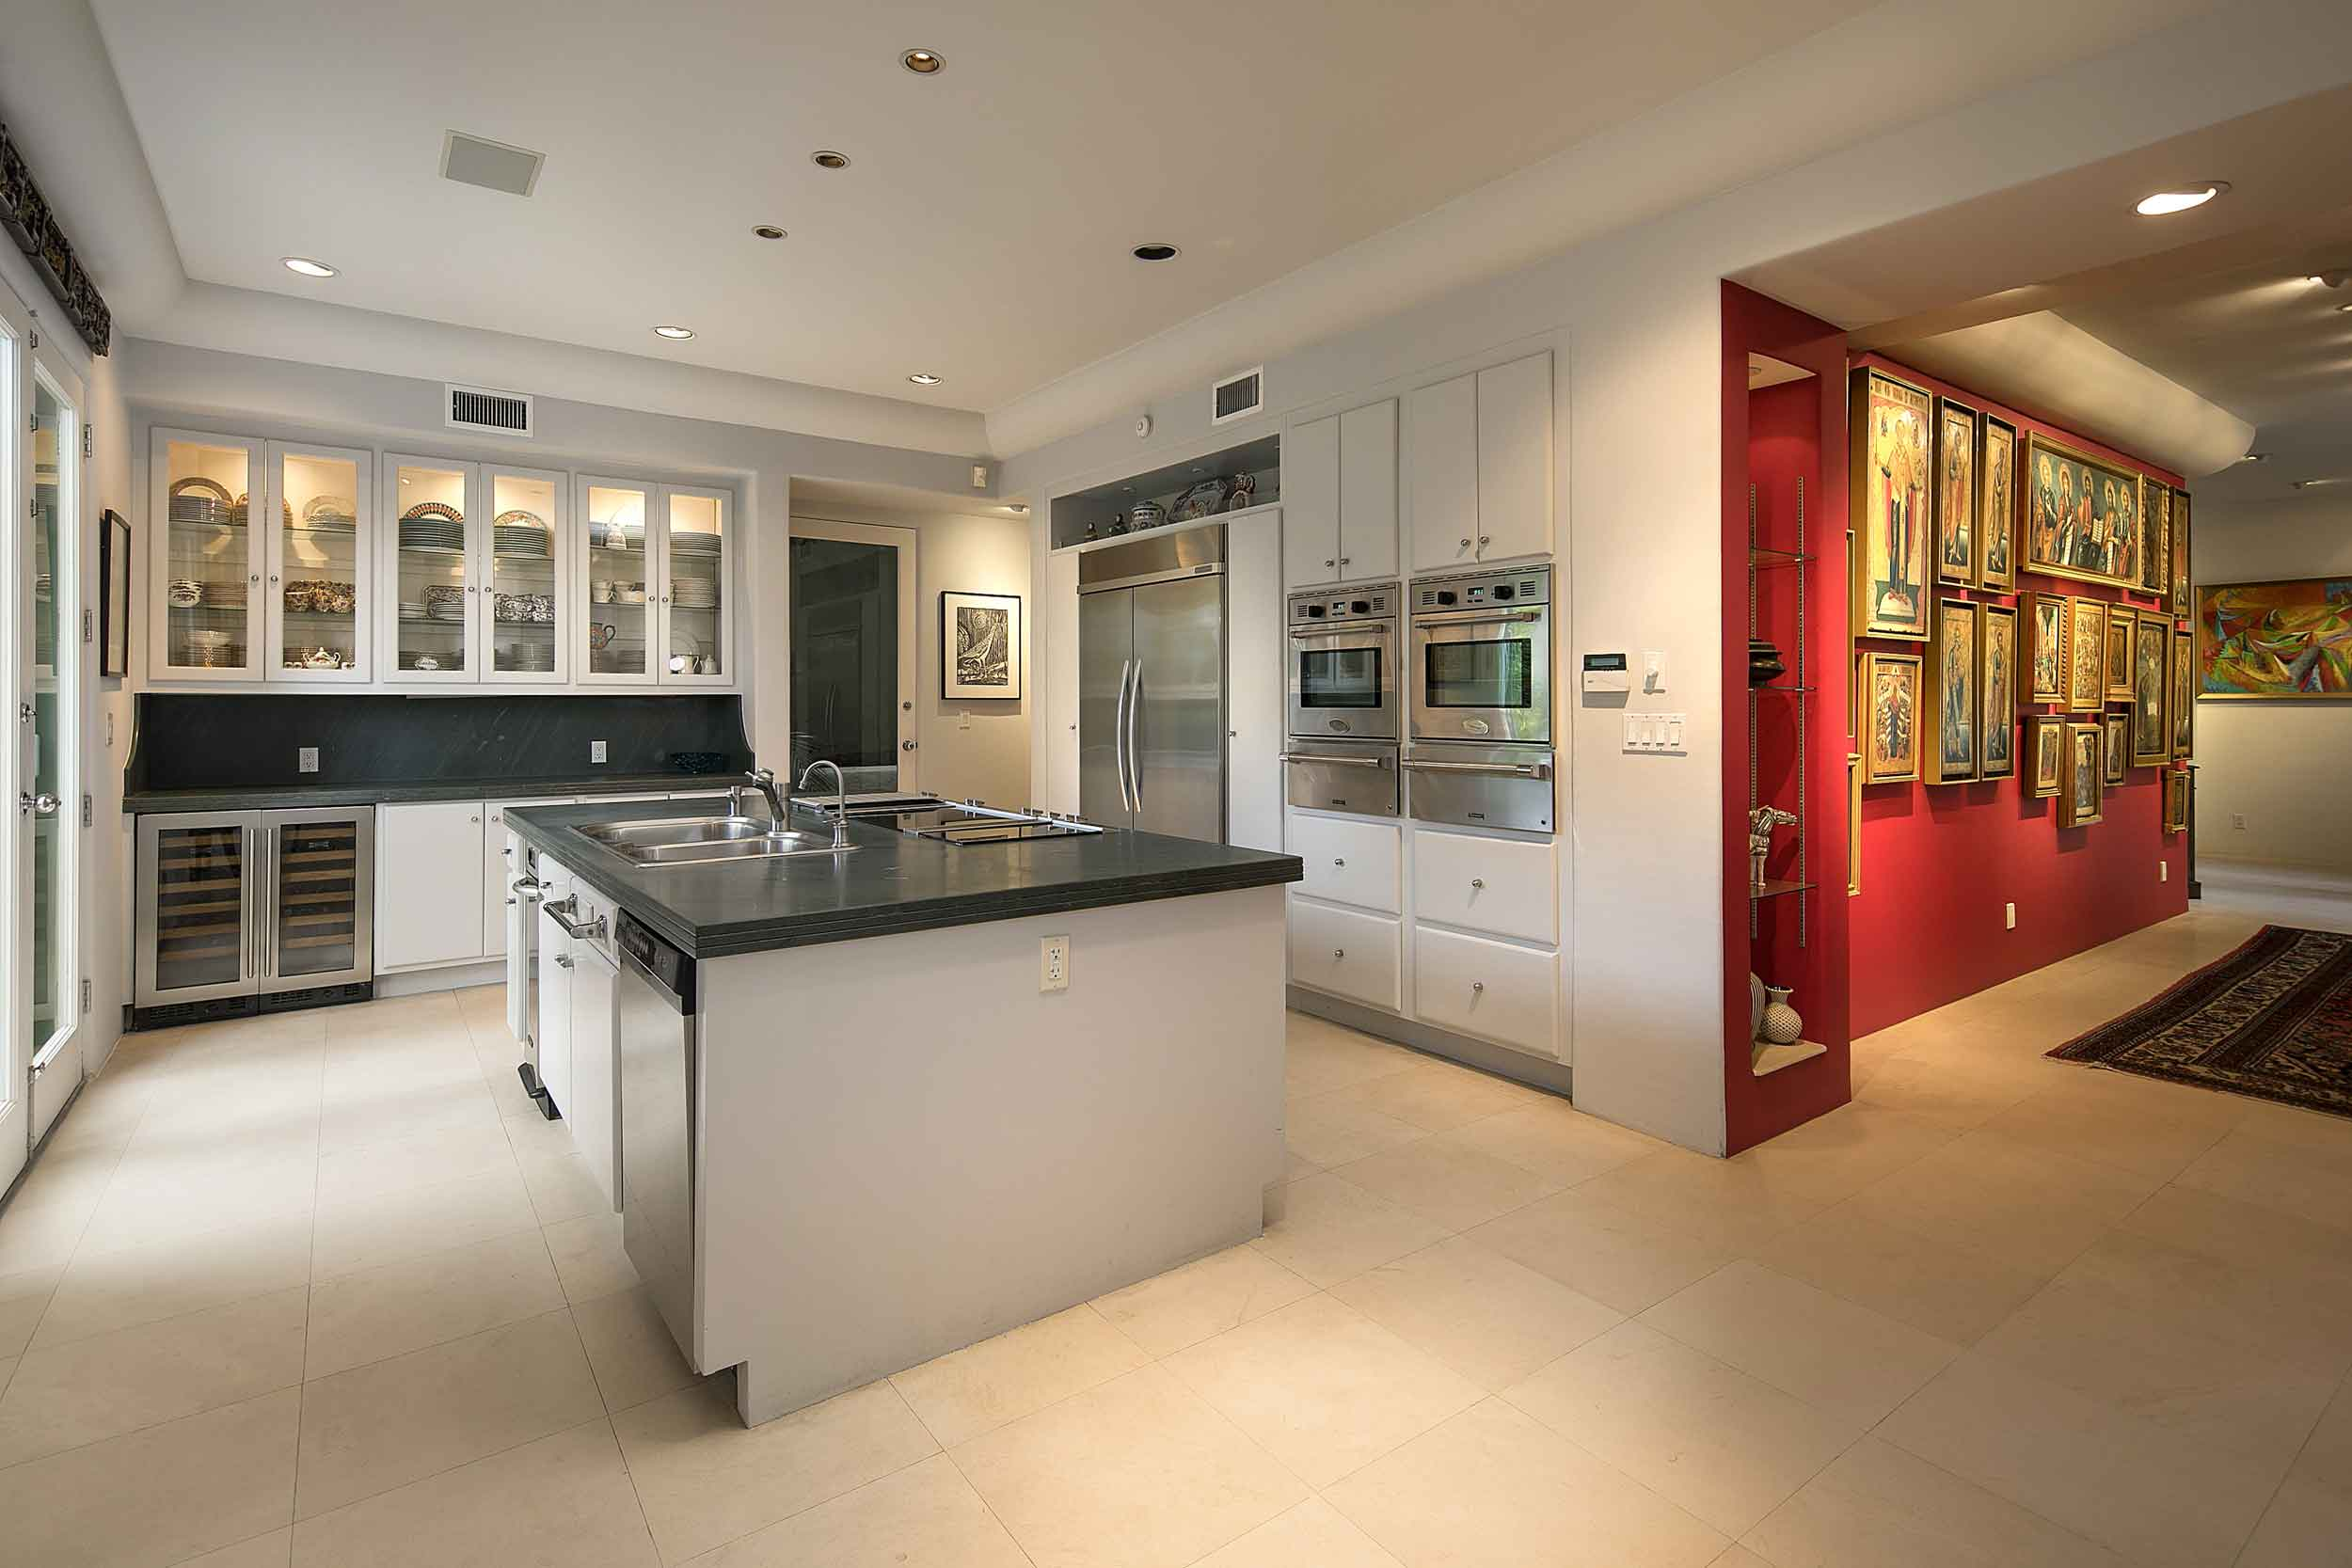 A newly modernized kitchen is a study in clean minimalism, with state of the art appliances and broad center island.